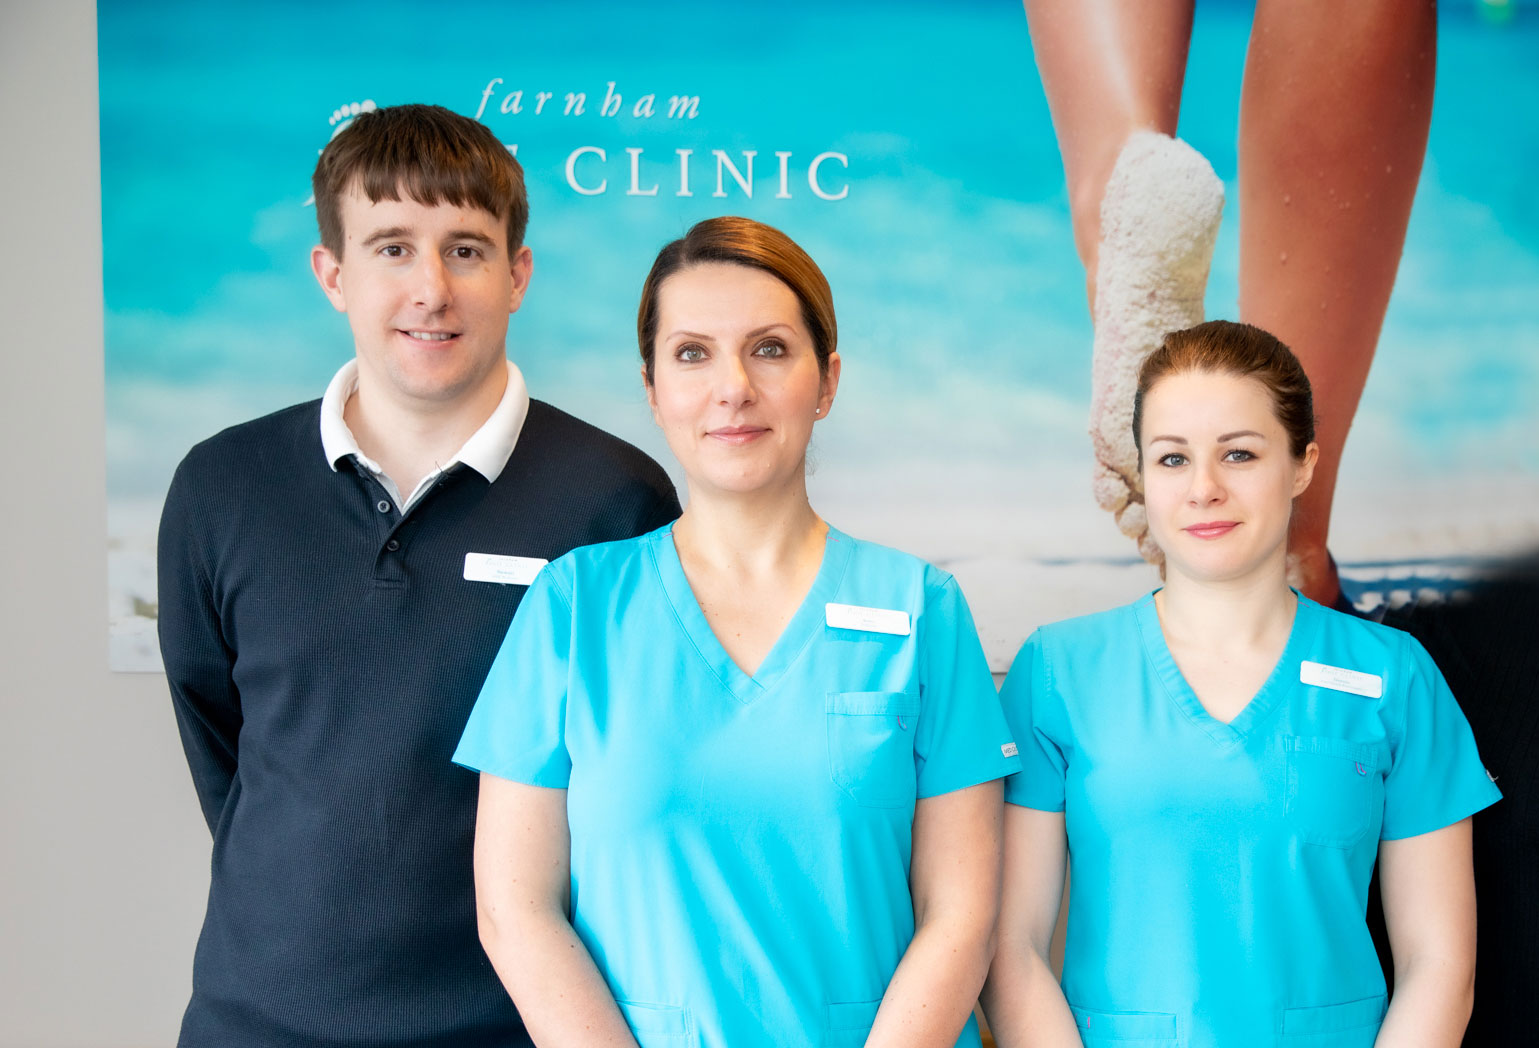 Our Farnham podiatry team in Surrey